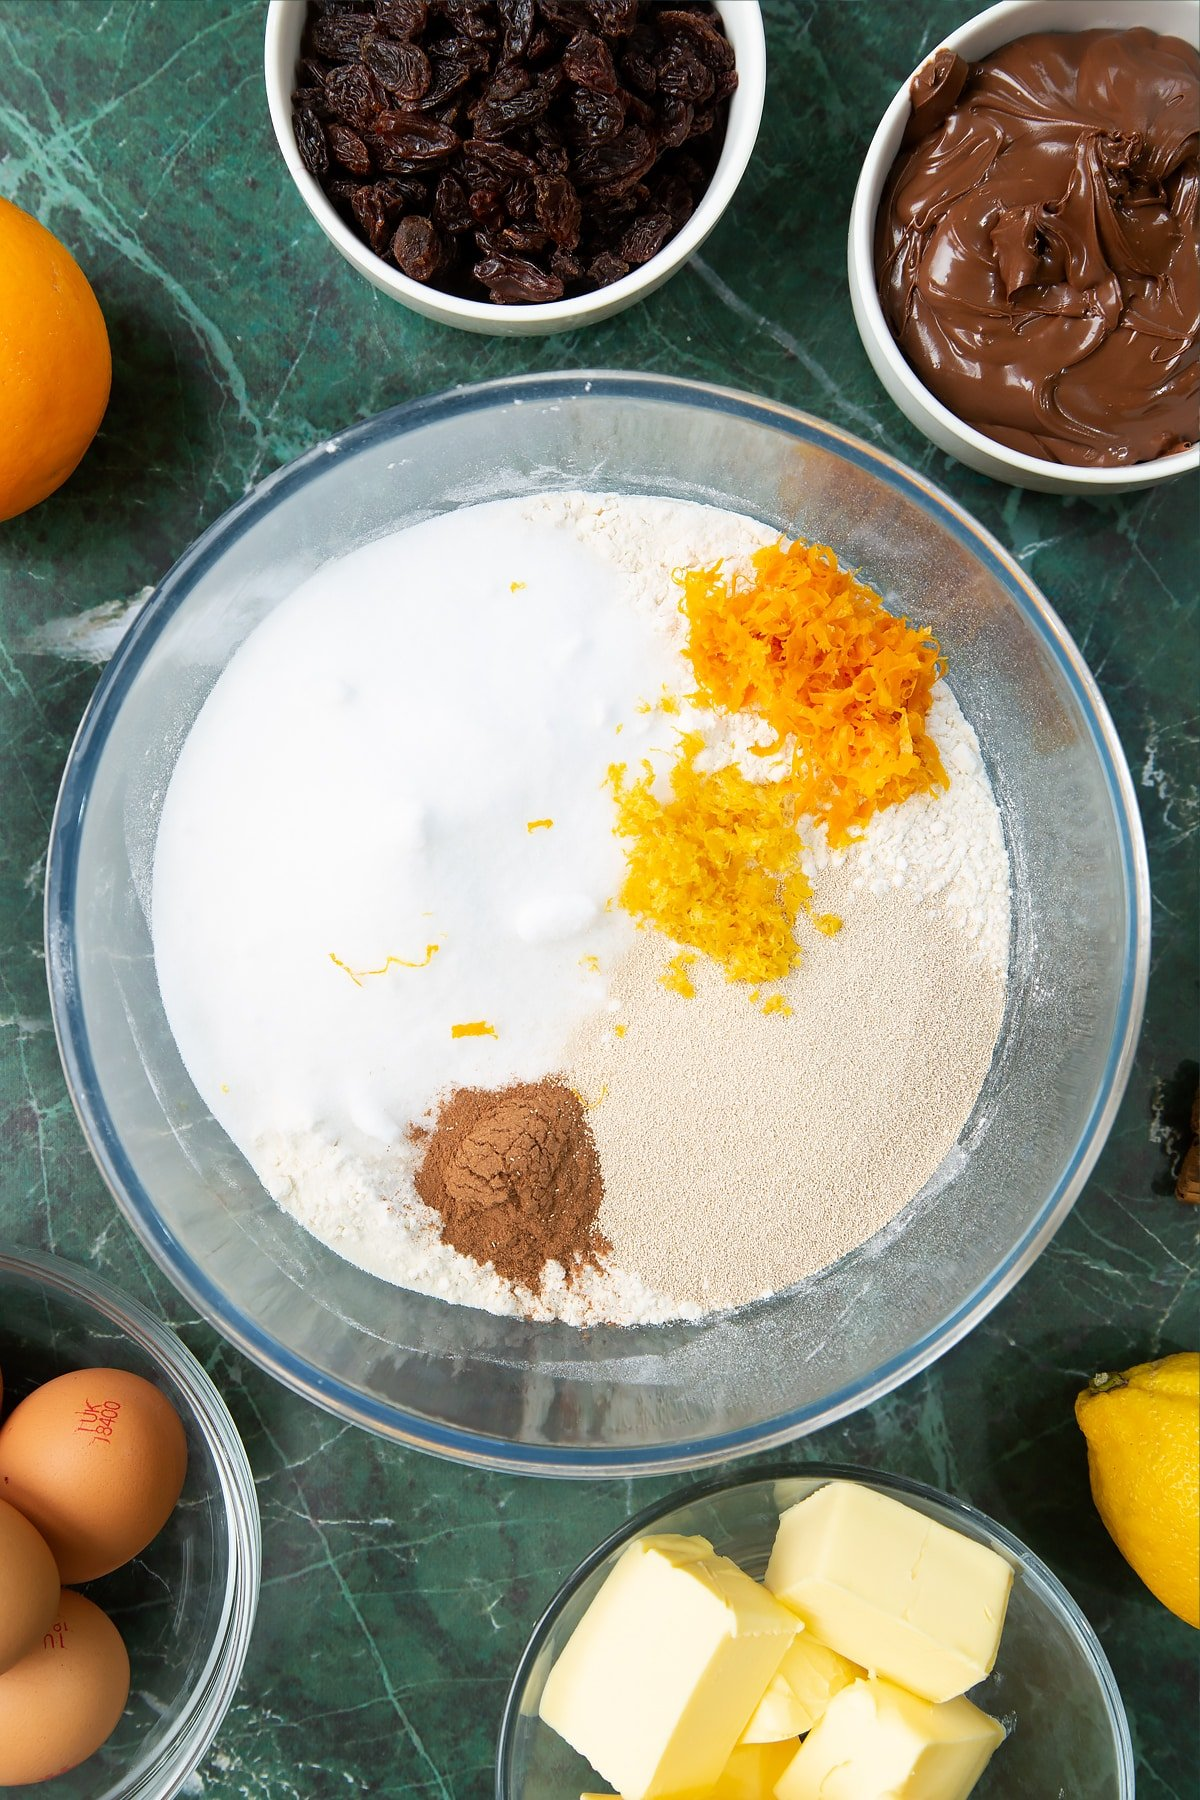 Bread flour, sugar, cinnamon, orange zest and lemon zest in a mixing bowl. Ingredients to make Nutella panettone surround the bowl.